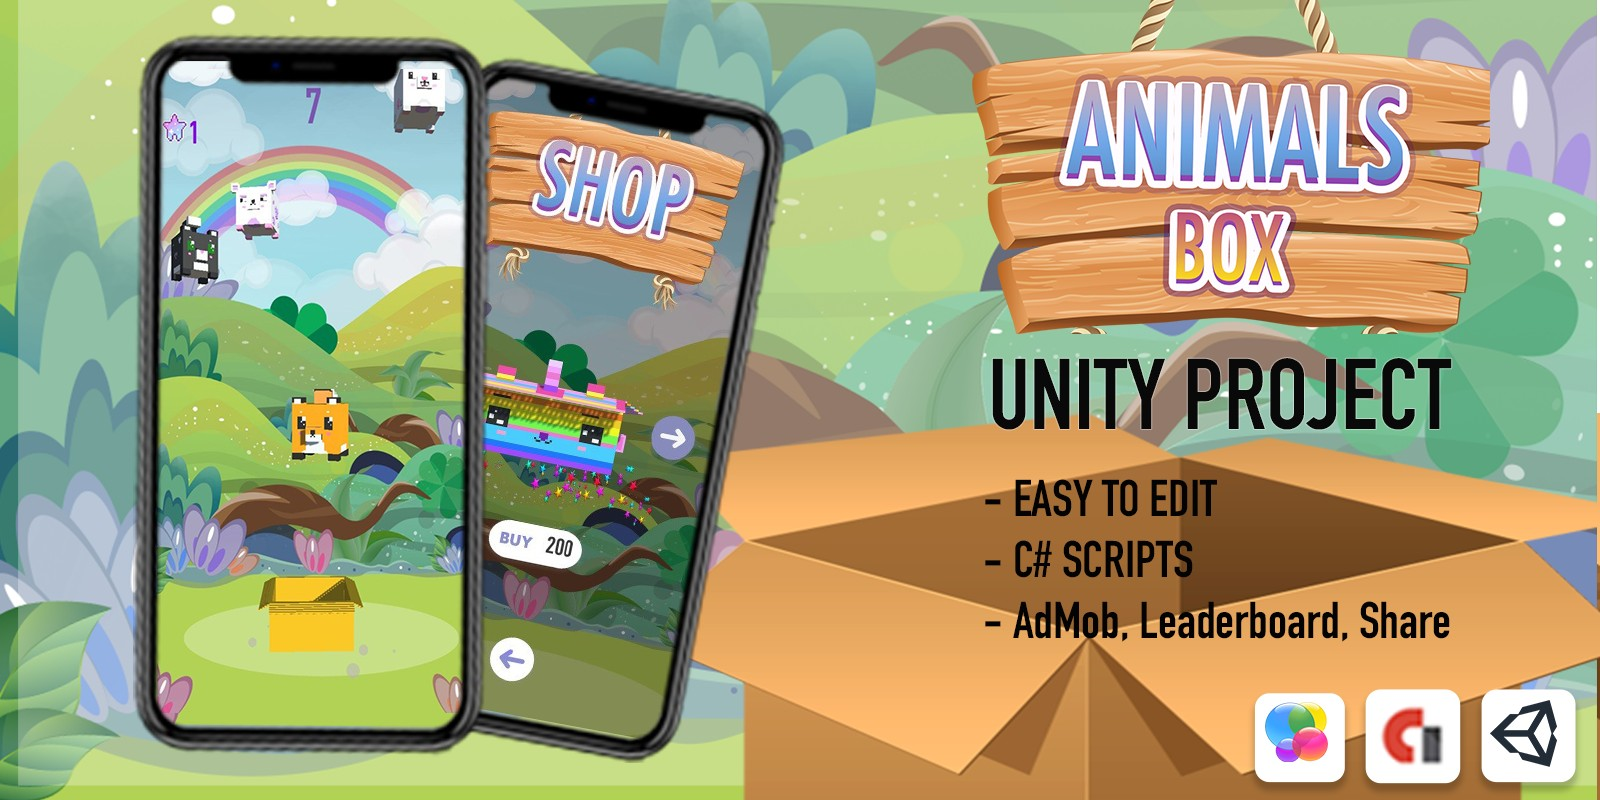 Animals Box - Unity Project